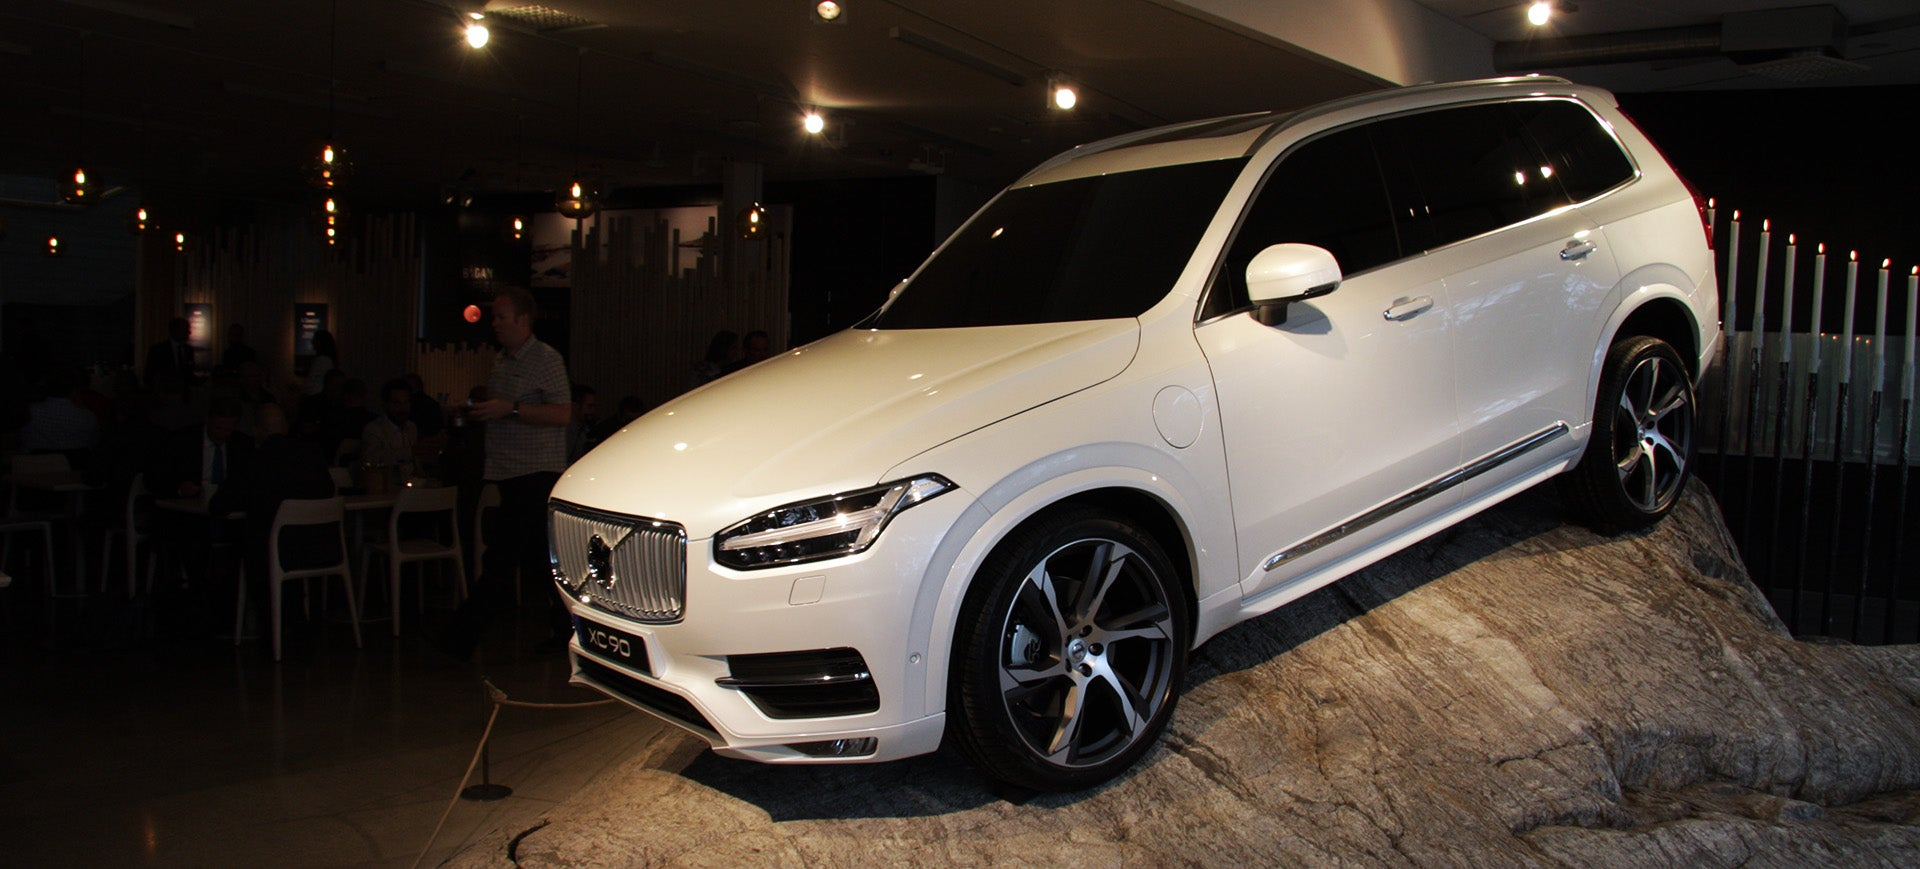 2015 Volvo Xc90 Everything You Need To Know